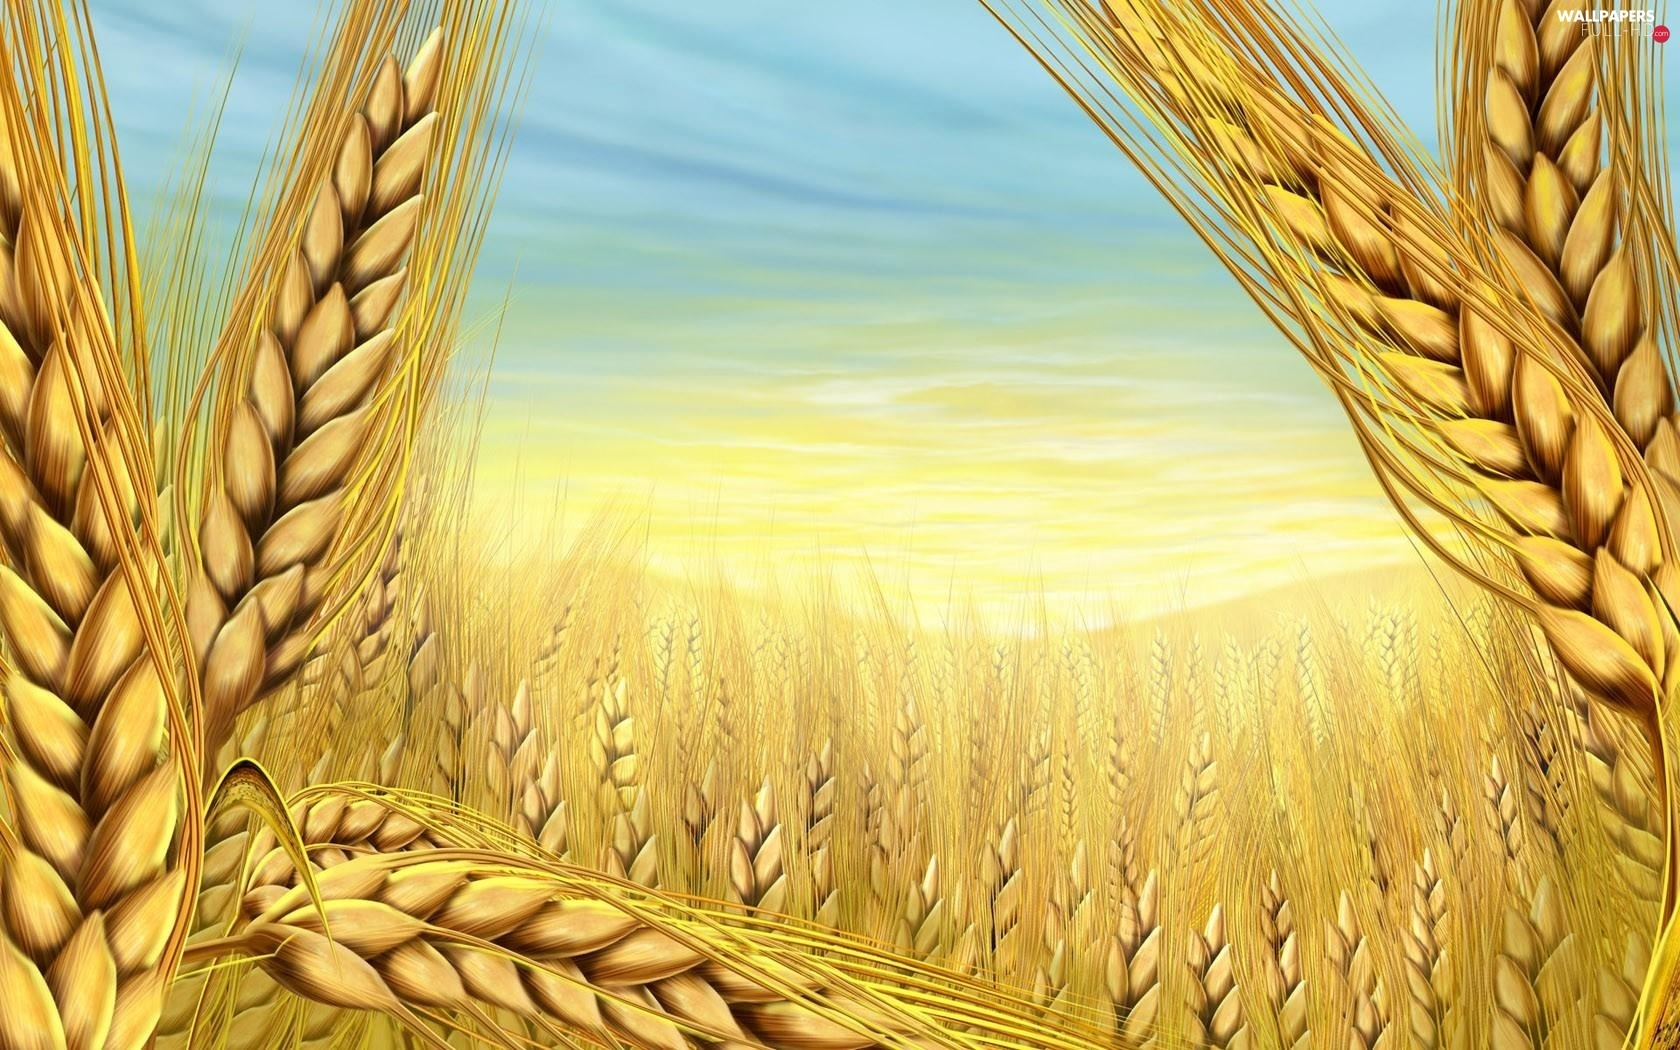 Field, cereals, wheat, Ears